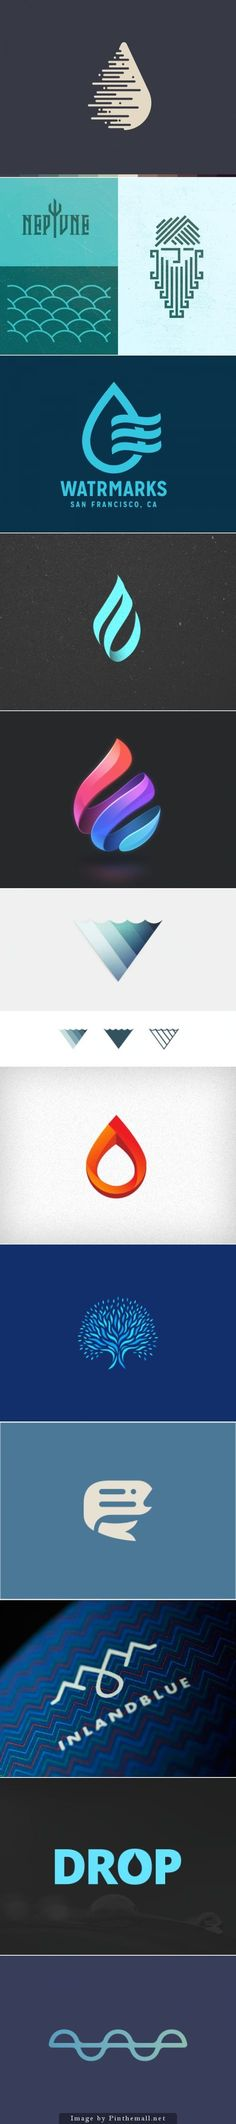 20 Beautiful Water Inspired Logos Logo - Vol combined with crest. Im stretching it now. I still like including all of volcrest at this time. maybe make the just the V the logo 2 Logo, Typography Logo, Logo Branding, Logo Montagne, Coperate Design, Tolle Logos, Logos Online, Inspiration Logo Design, Water Logo